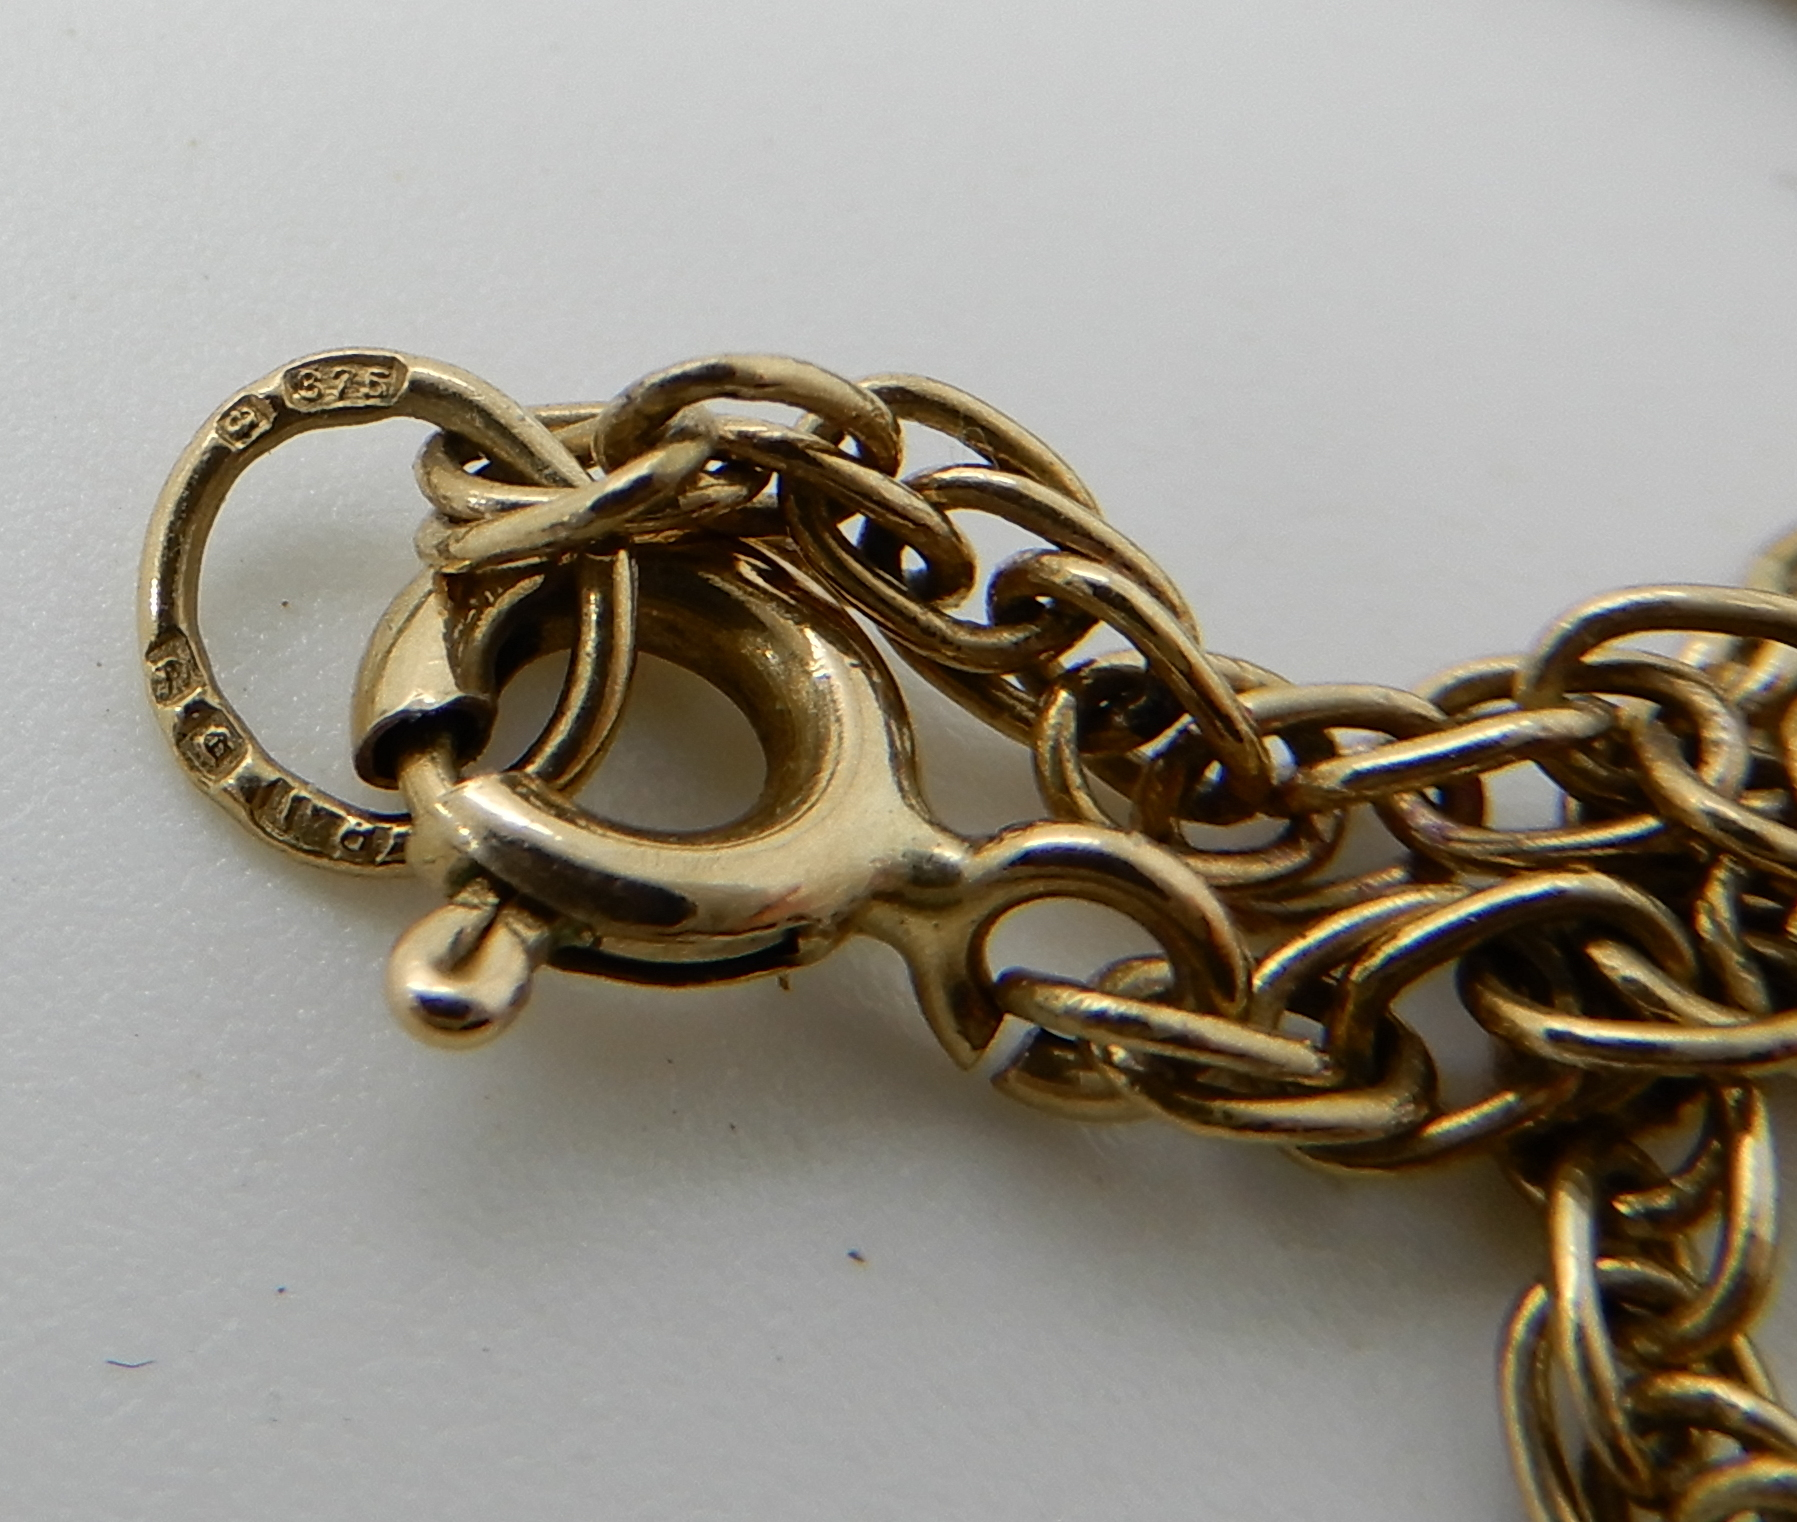 Lot 36 - A 9ct gold rope chain, length 78cm, weight 8.6gms Condition Report: Available upon request